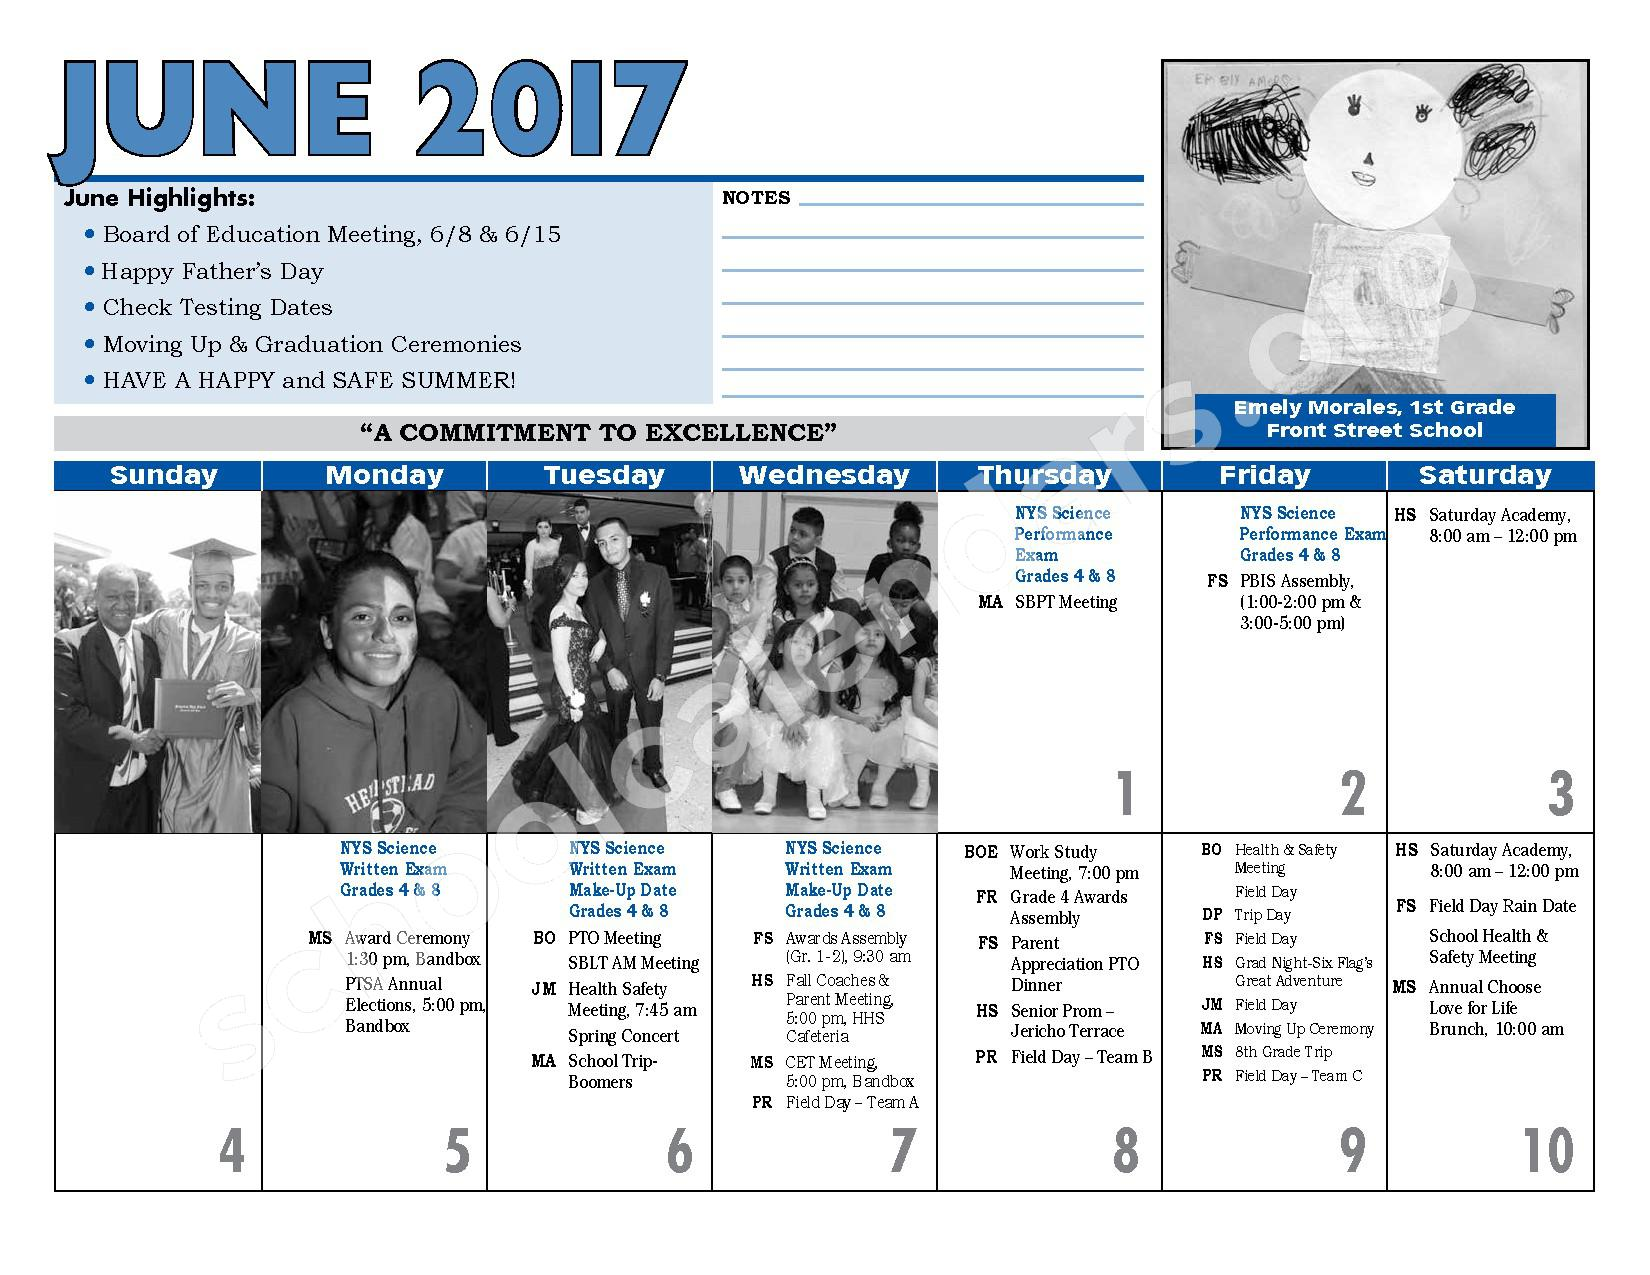 2016 - 2017 District Calendar – Hempstead Union Free School District – page 26